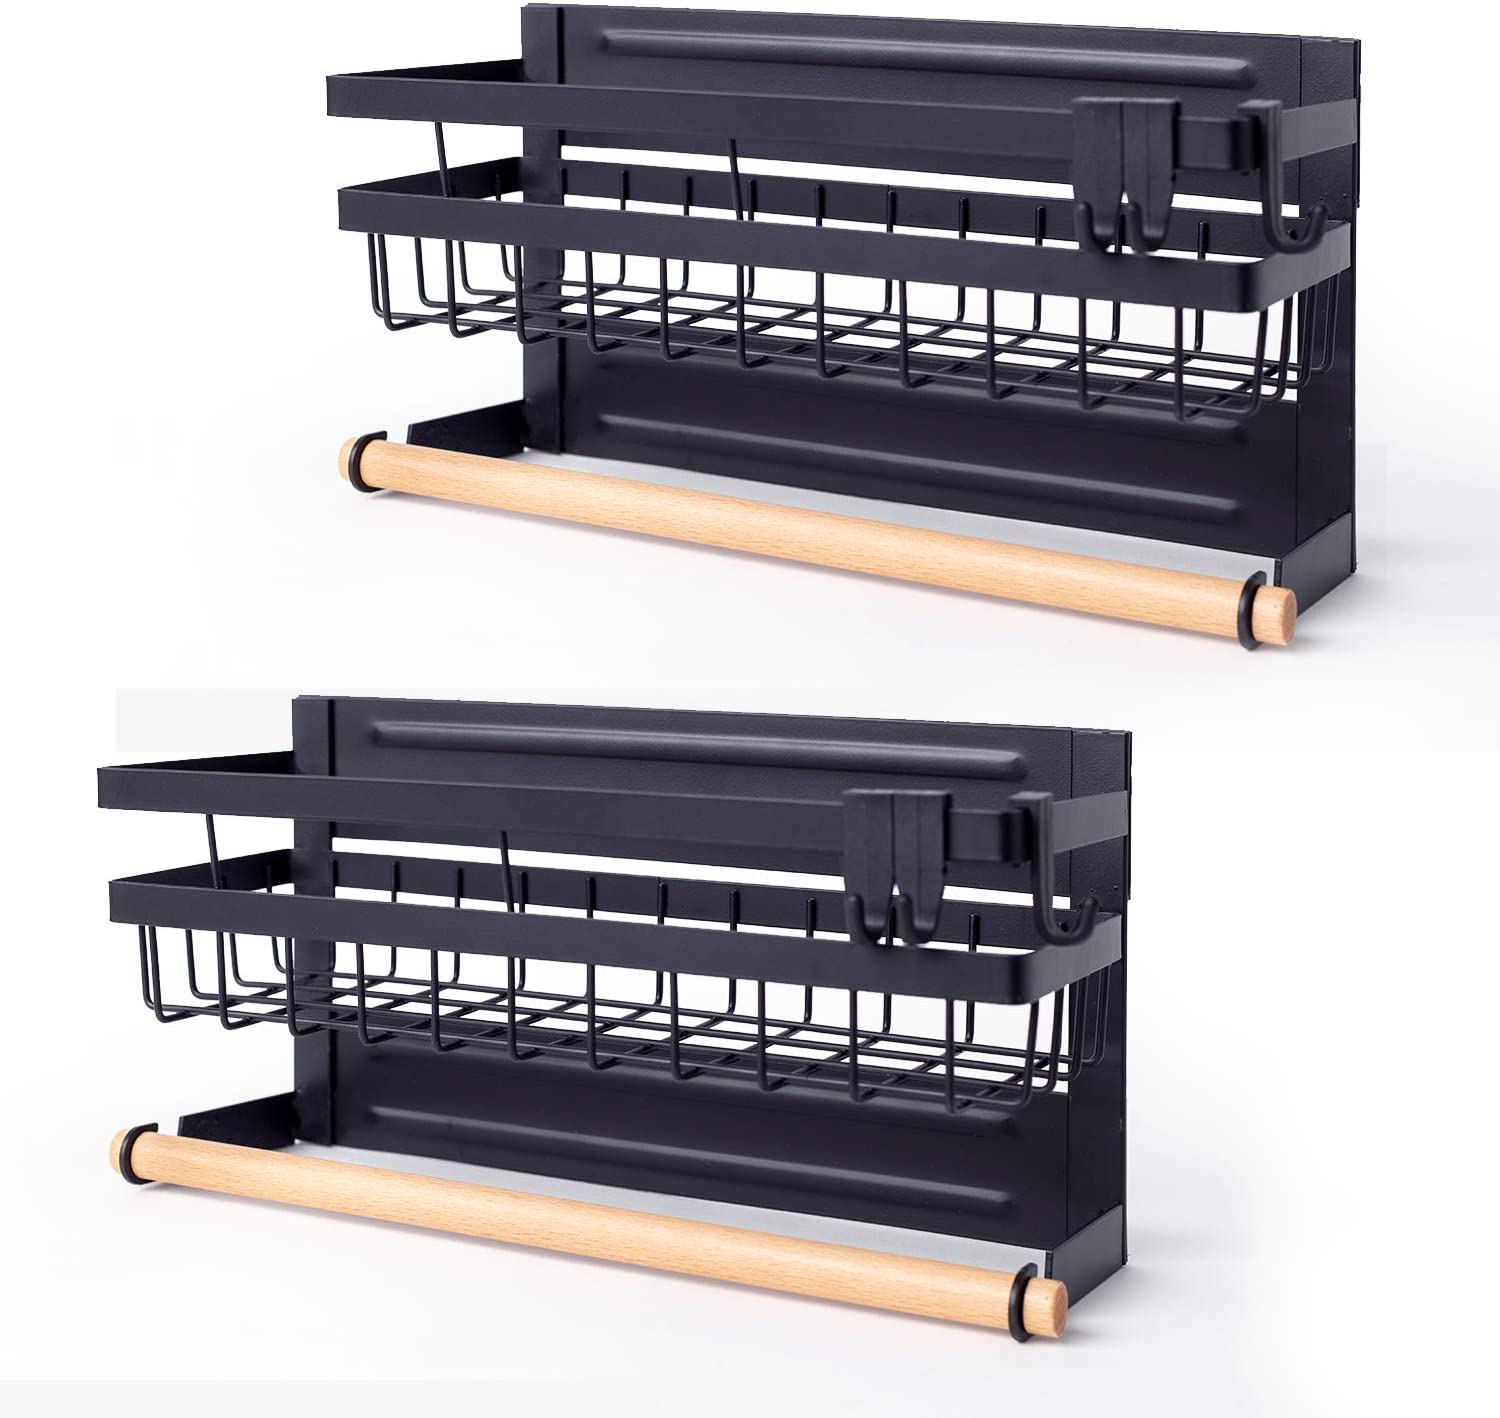 Sleclean Magnetic Spice SALENEW very popular! Rack Organizer of Genuine Free Shipping for Refrigerator Pack